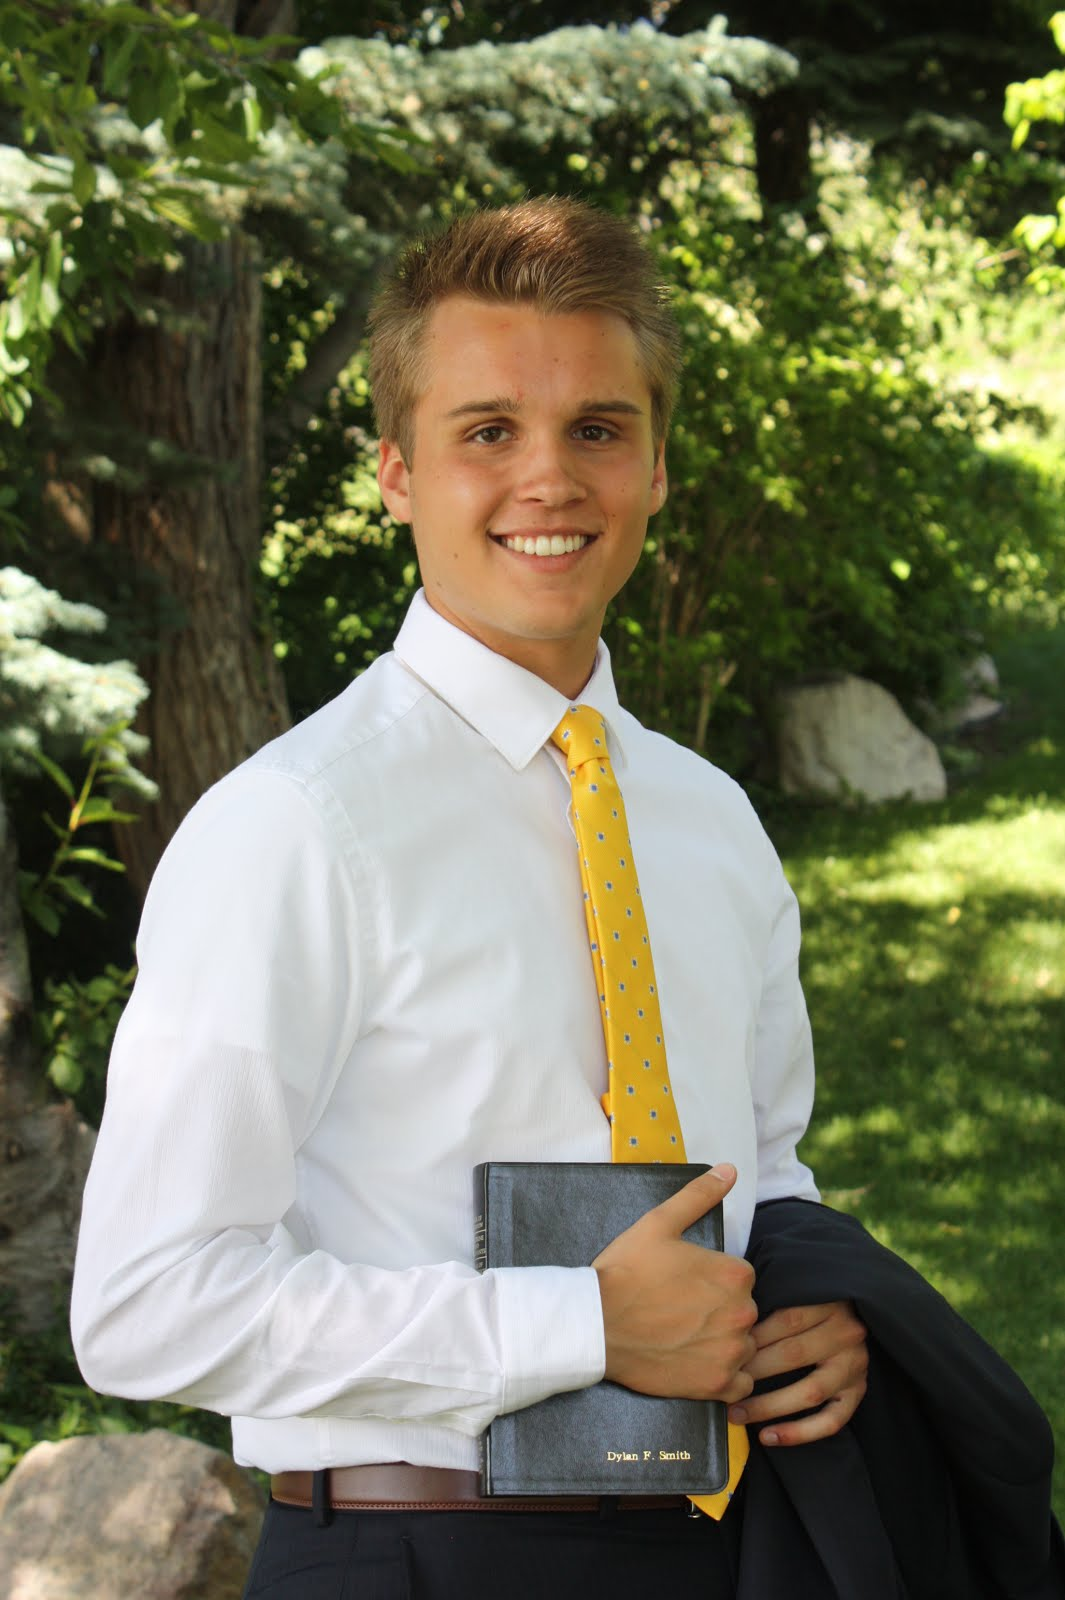 Elder Dylan Frank Smith